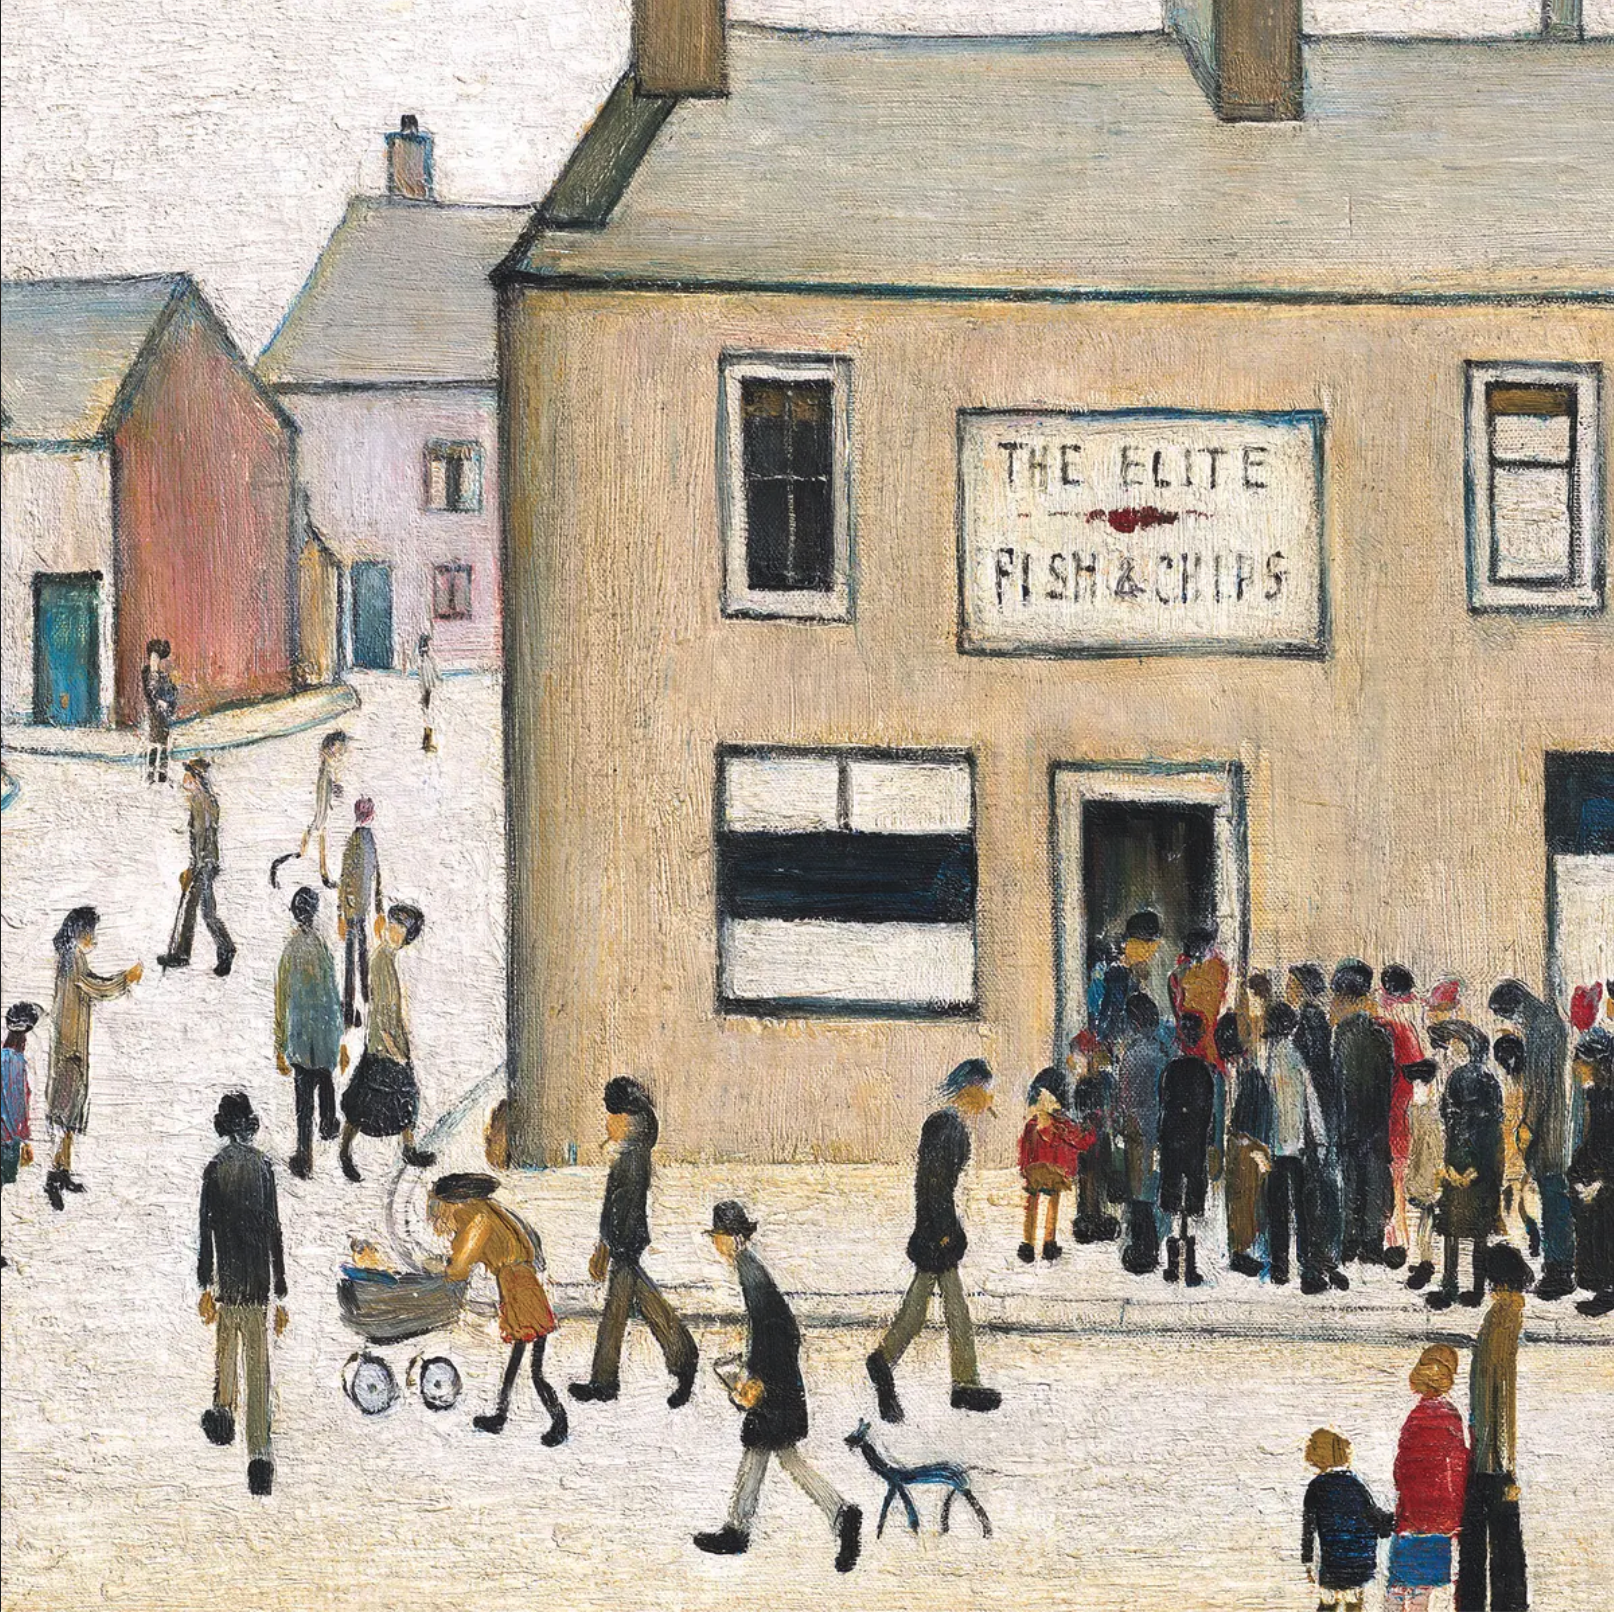 The Elite Fish & Chip Shop (1949) by Laurence Stephen Lowry (1887 - 1976), English artist.